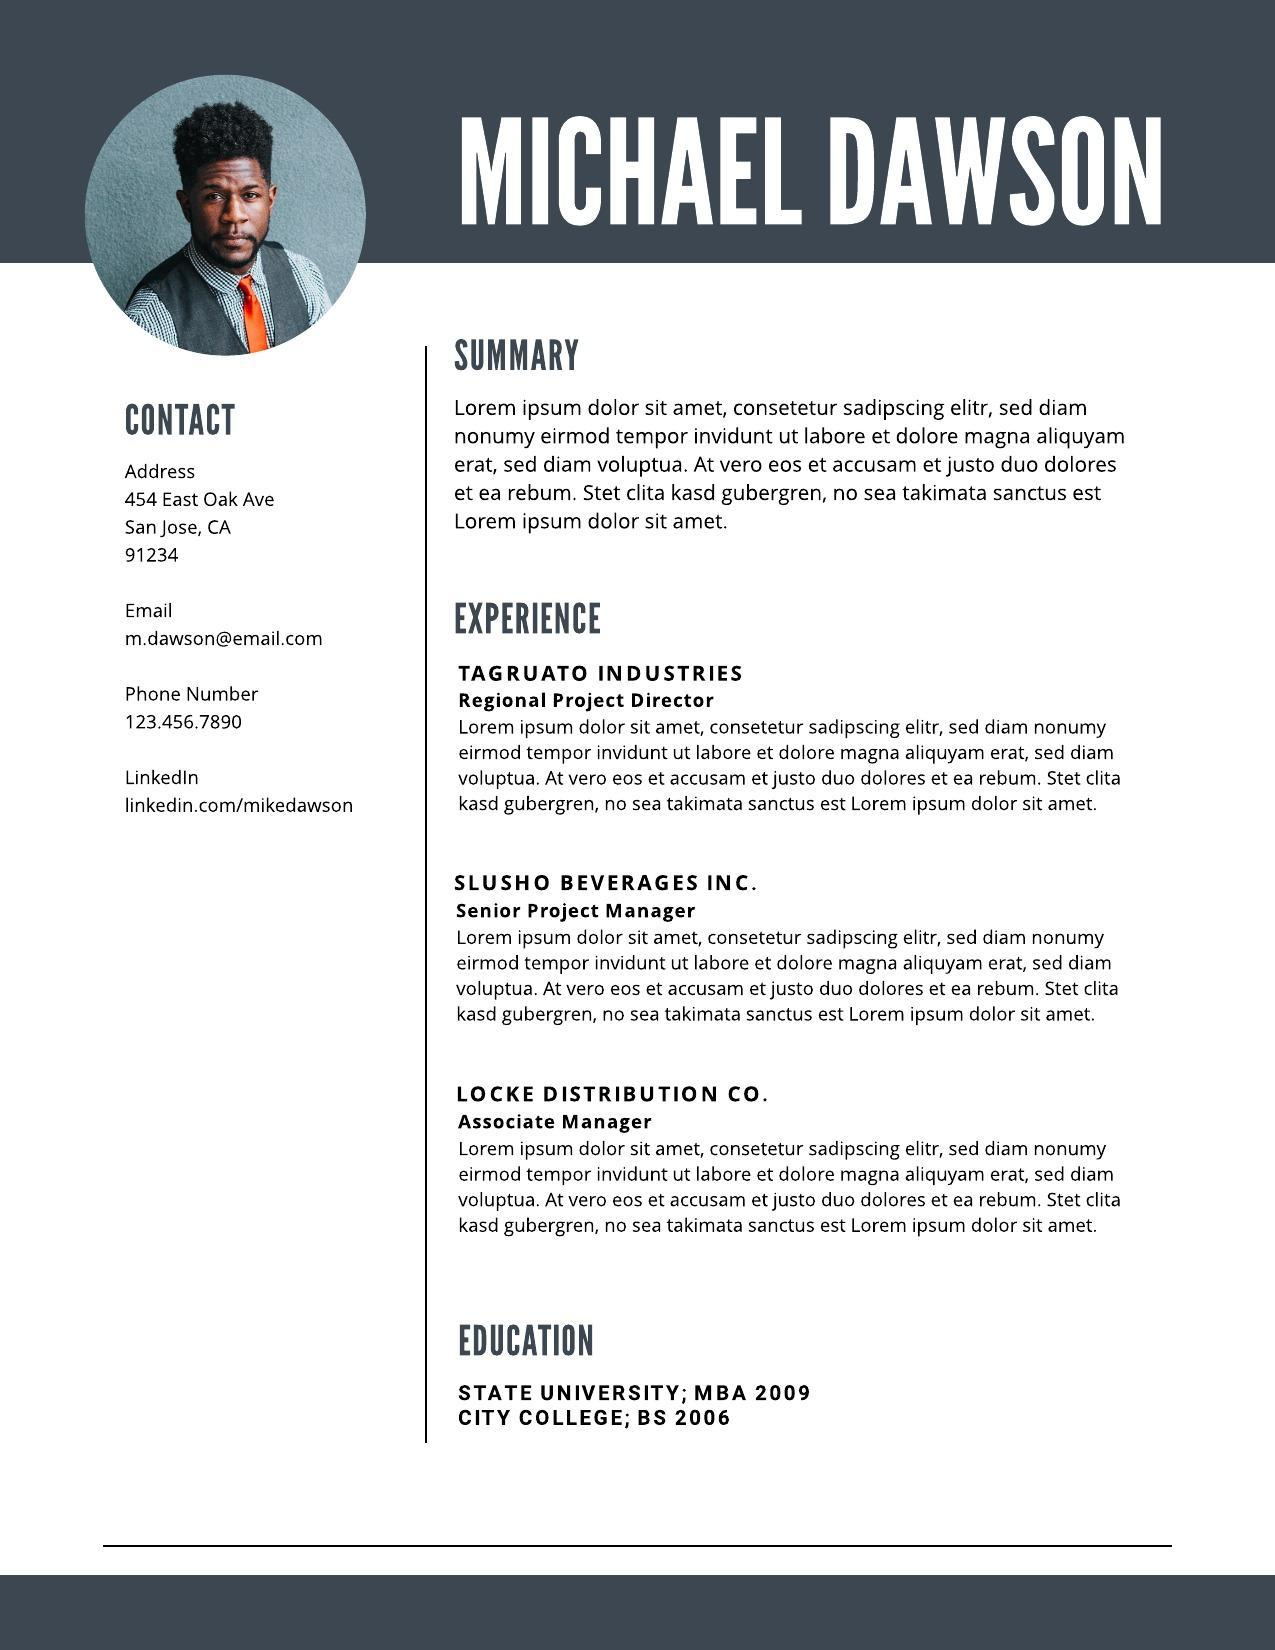 resume examples writing tips for lucidpress basic image04 most professional looking Resume Basic Resume Examples 2019